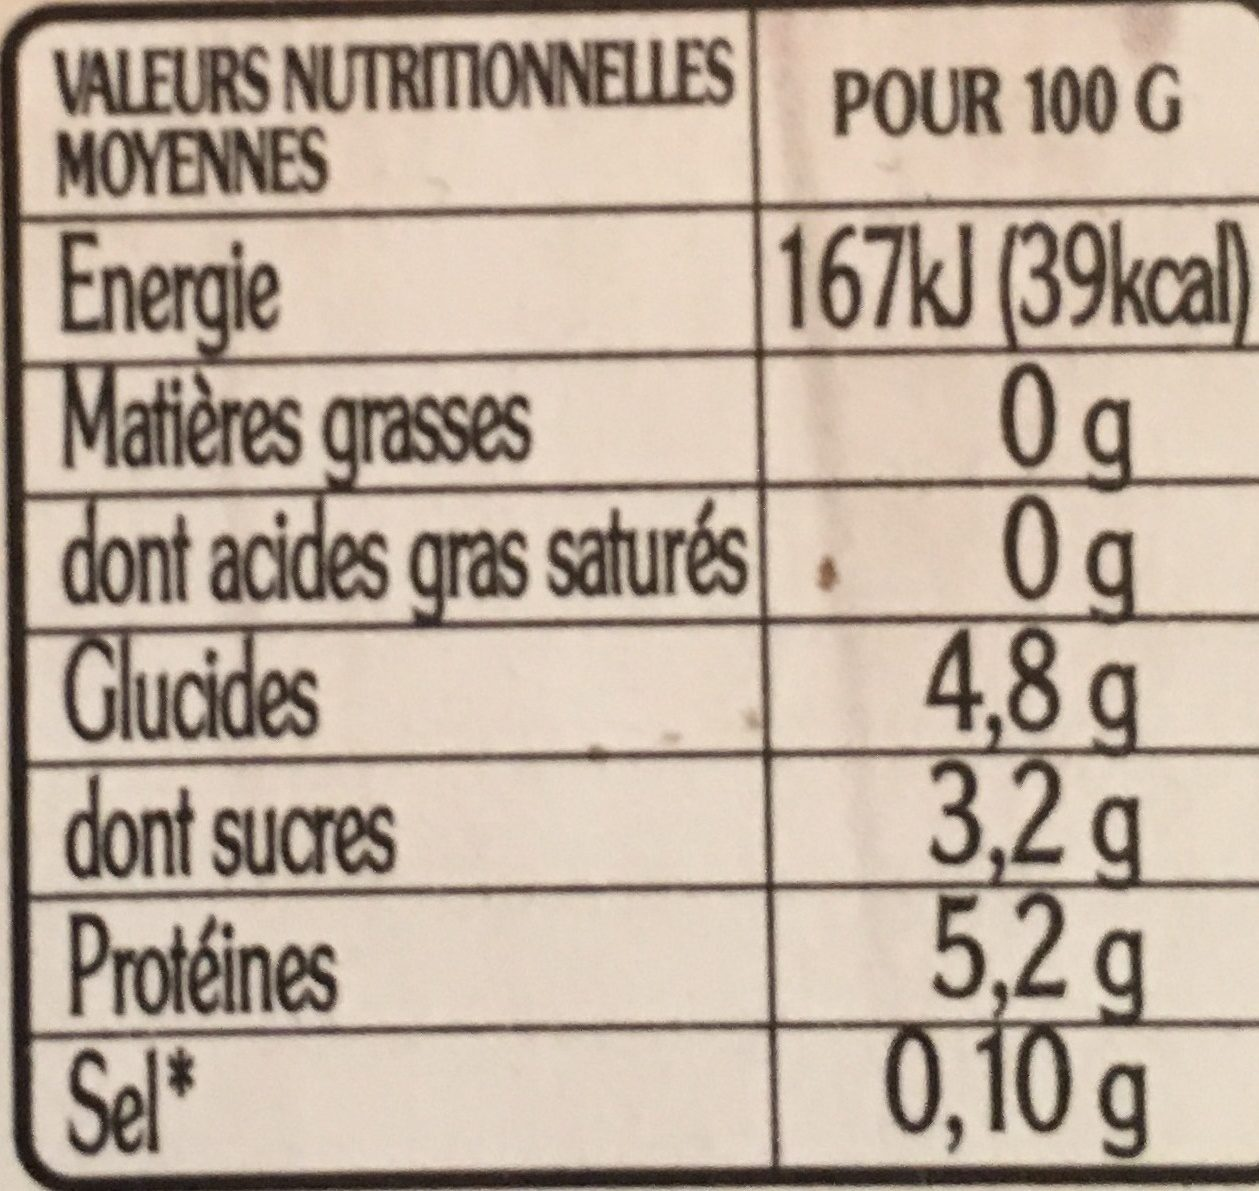 La faiselle - Nutrition facts